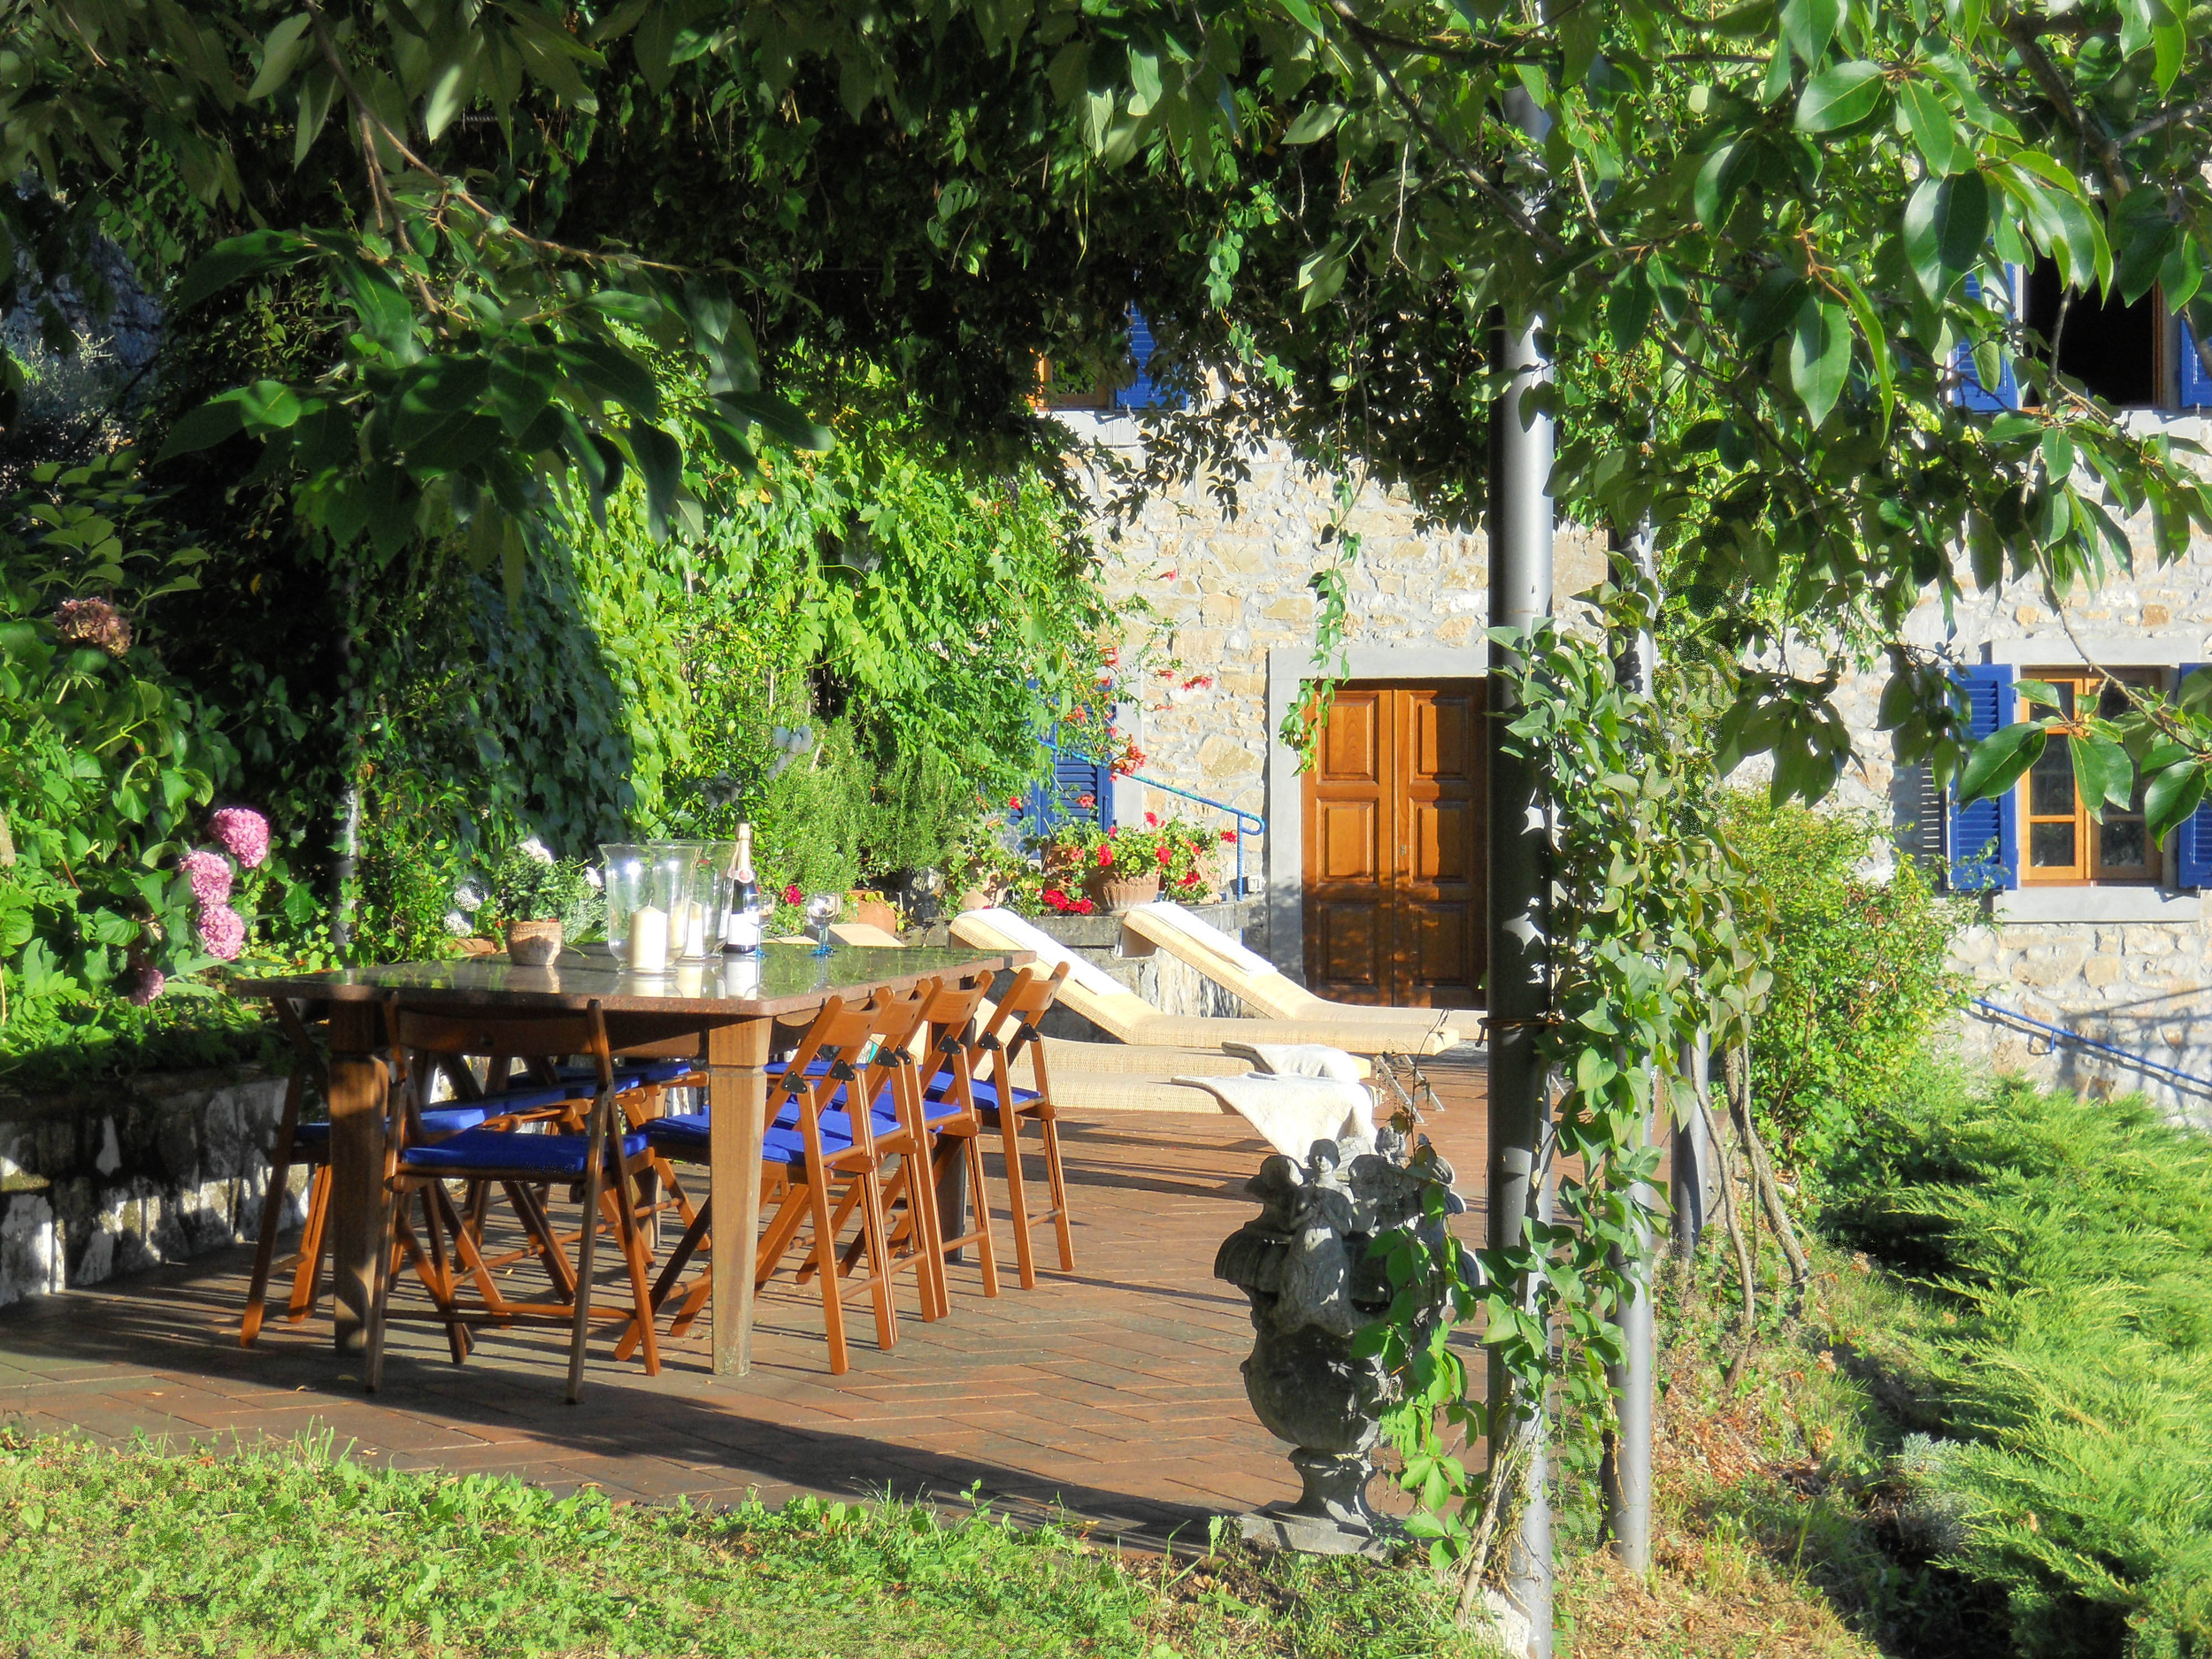 LA COLLINA DEL SOLE SideTerrace